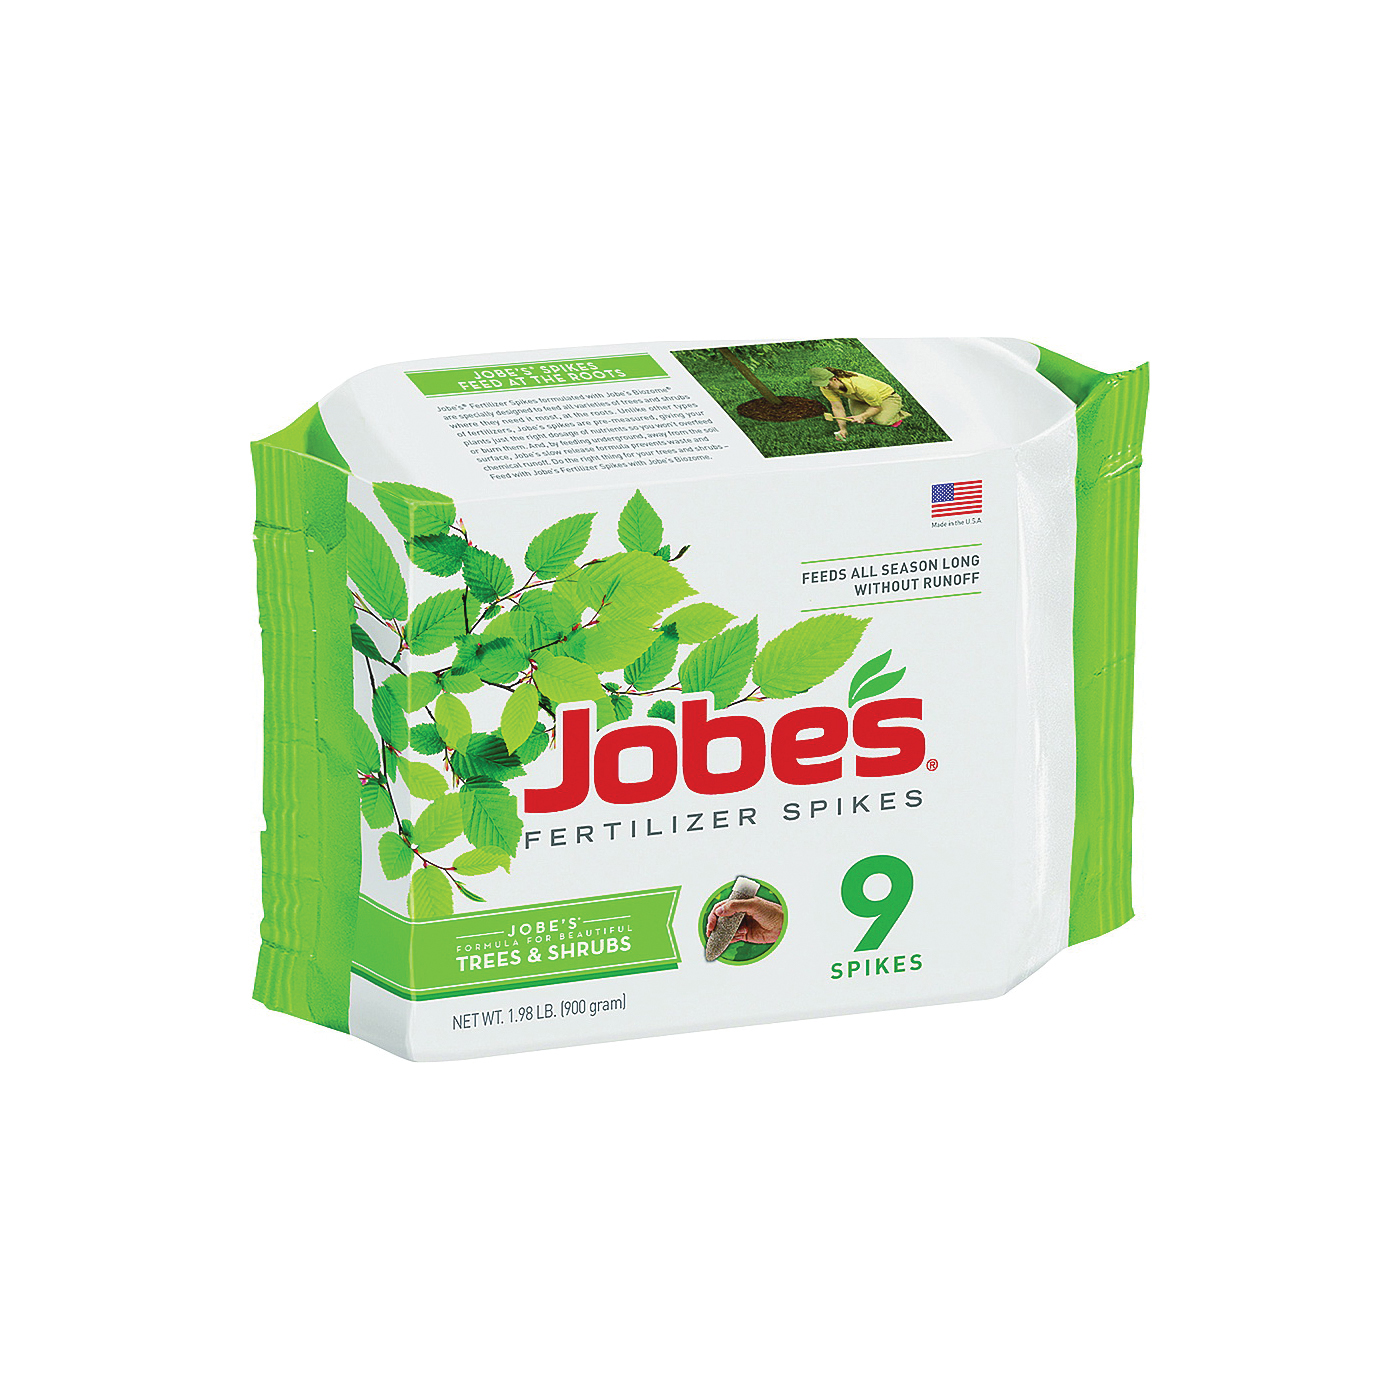 Picture of Jobes 01310 Fertilizer Spike, Spike, Gray/Light Brown, Slight Ammonia, 4 lb Package, Pack